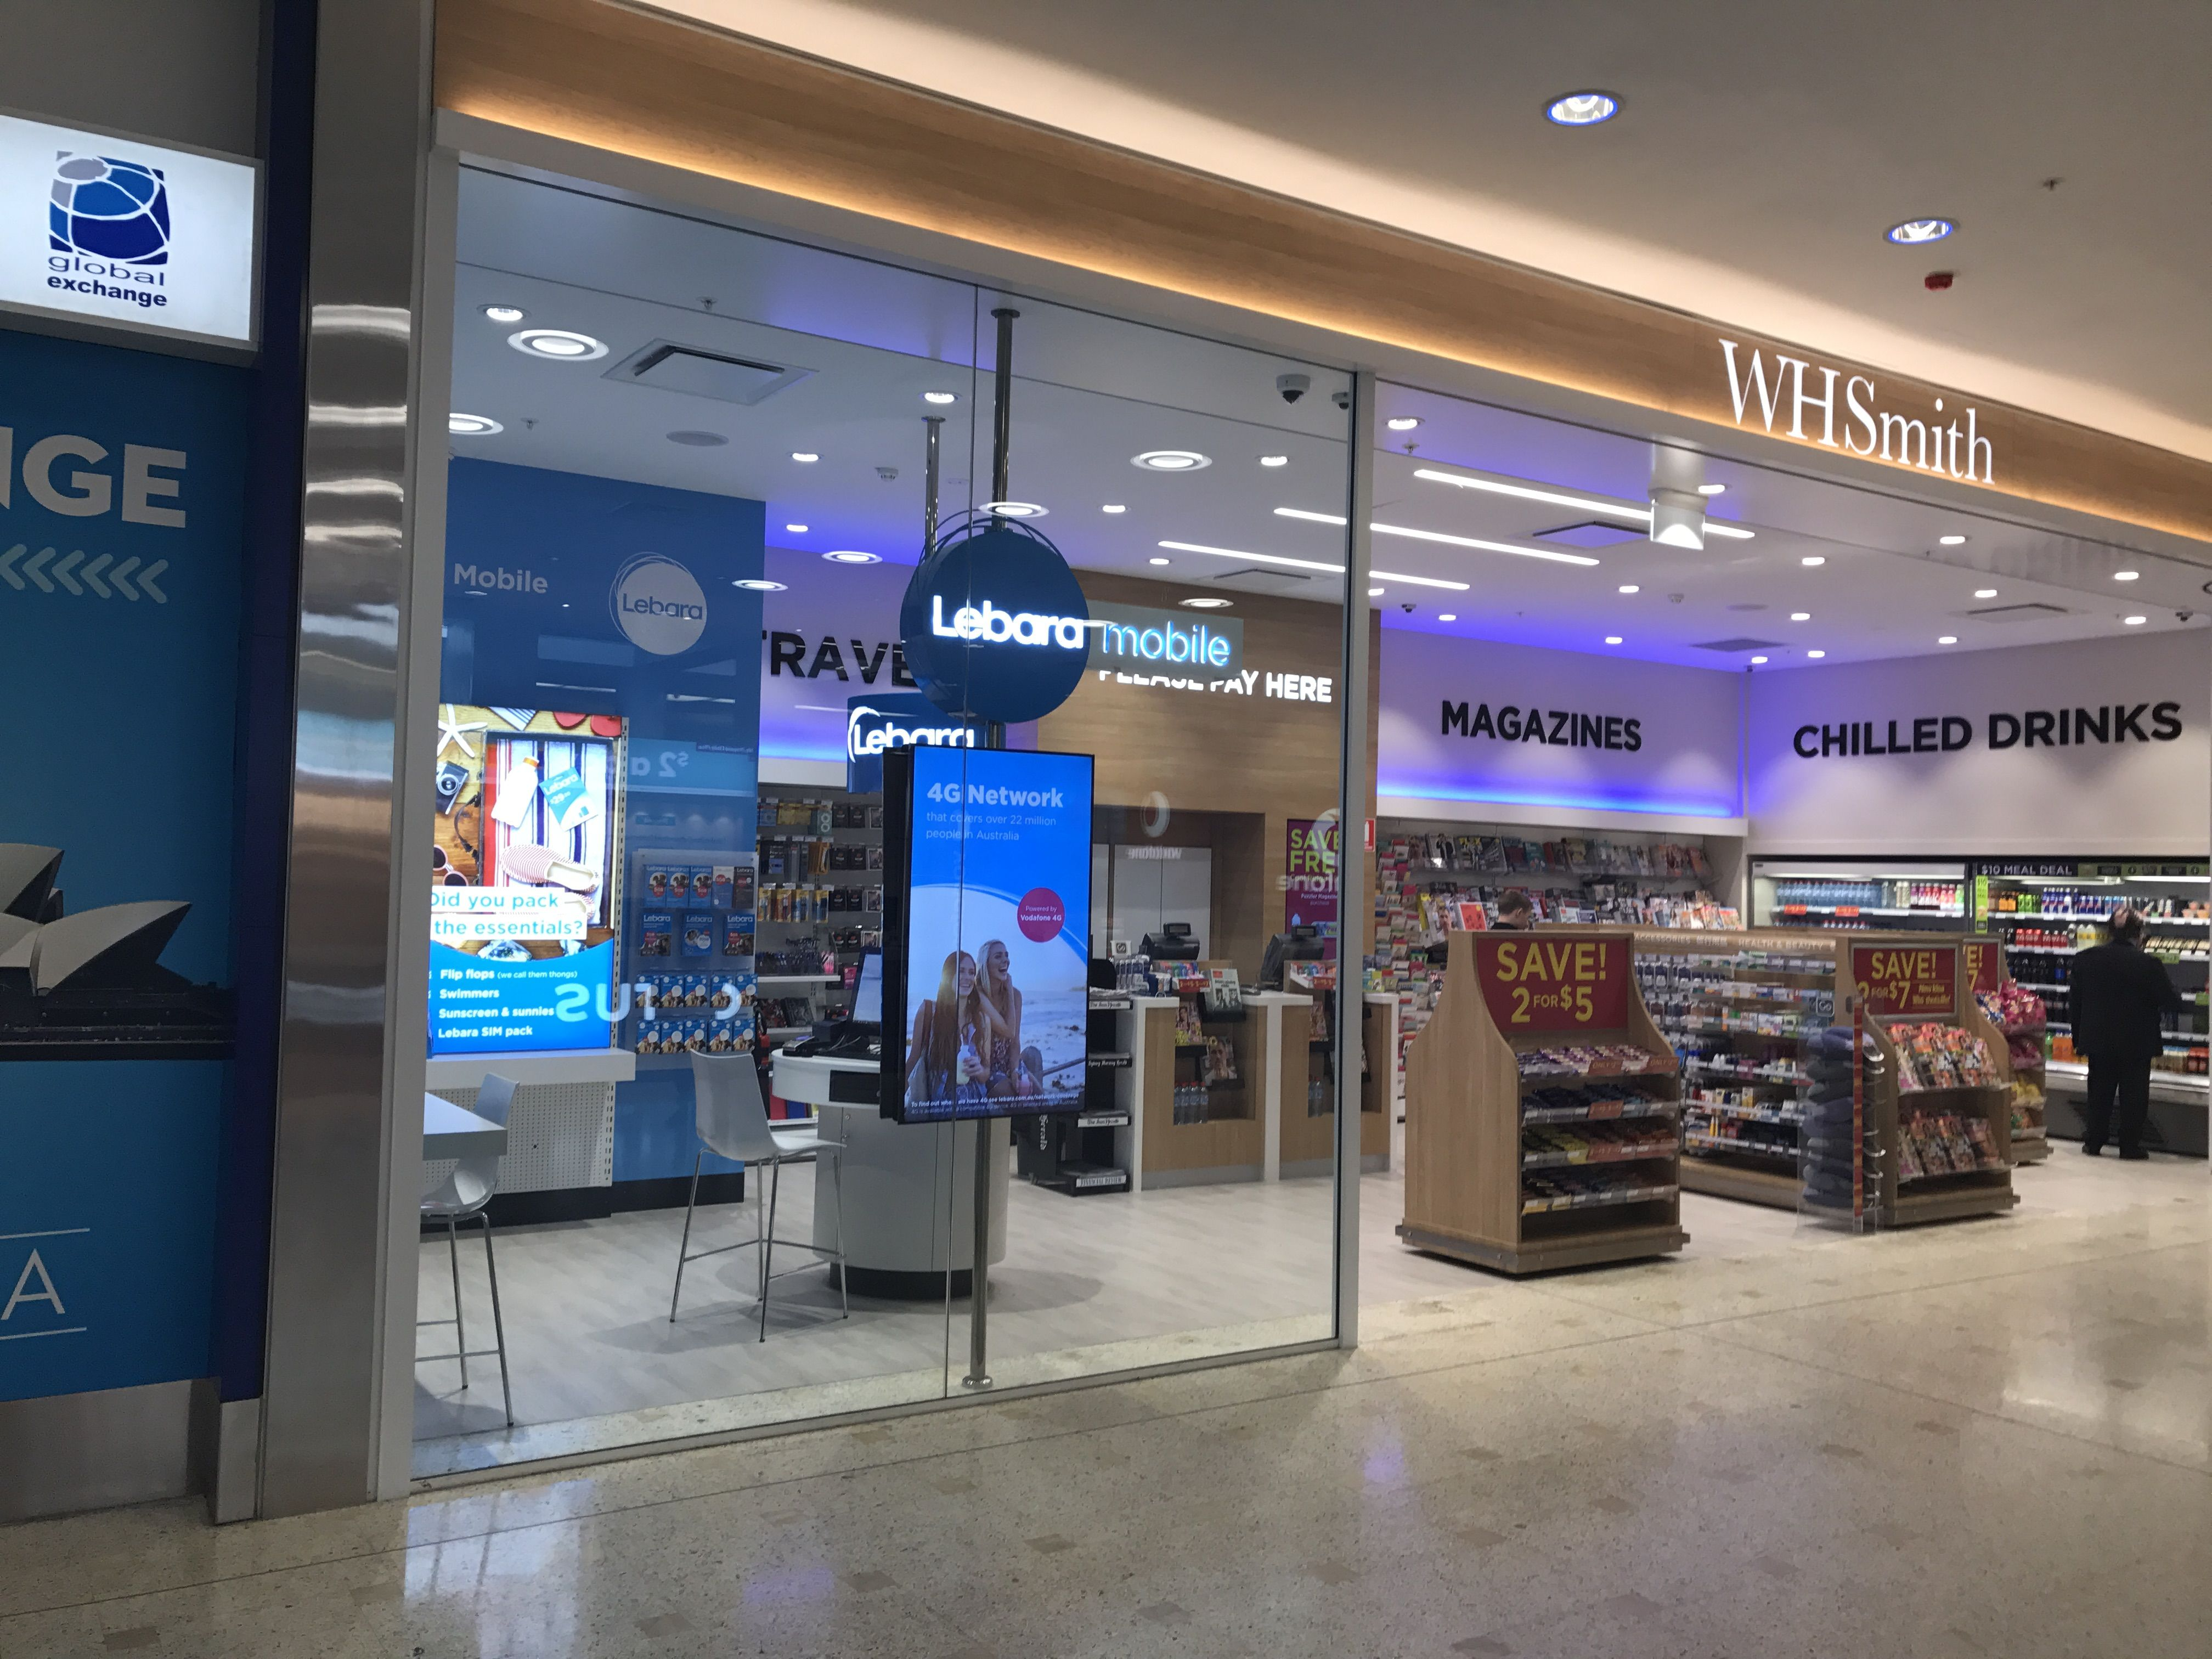 Sydney Airport Shops Telstra Fre 1 1 And Wh Smith May Stores